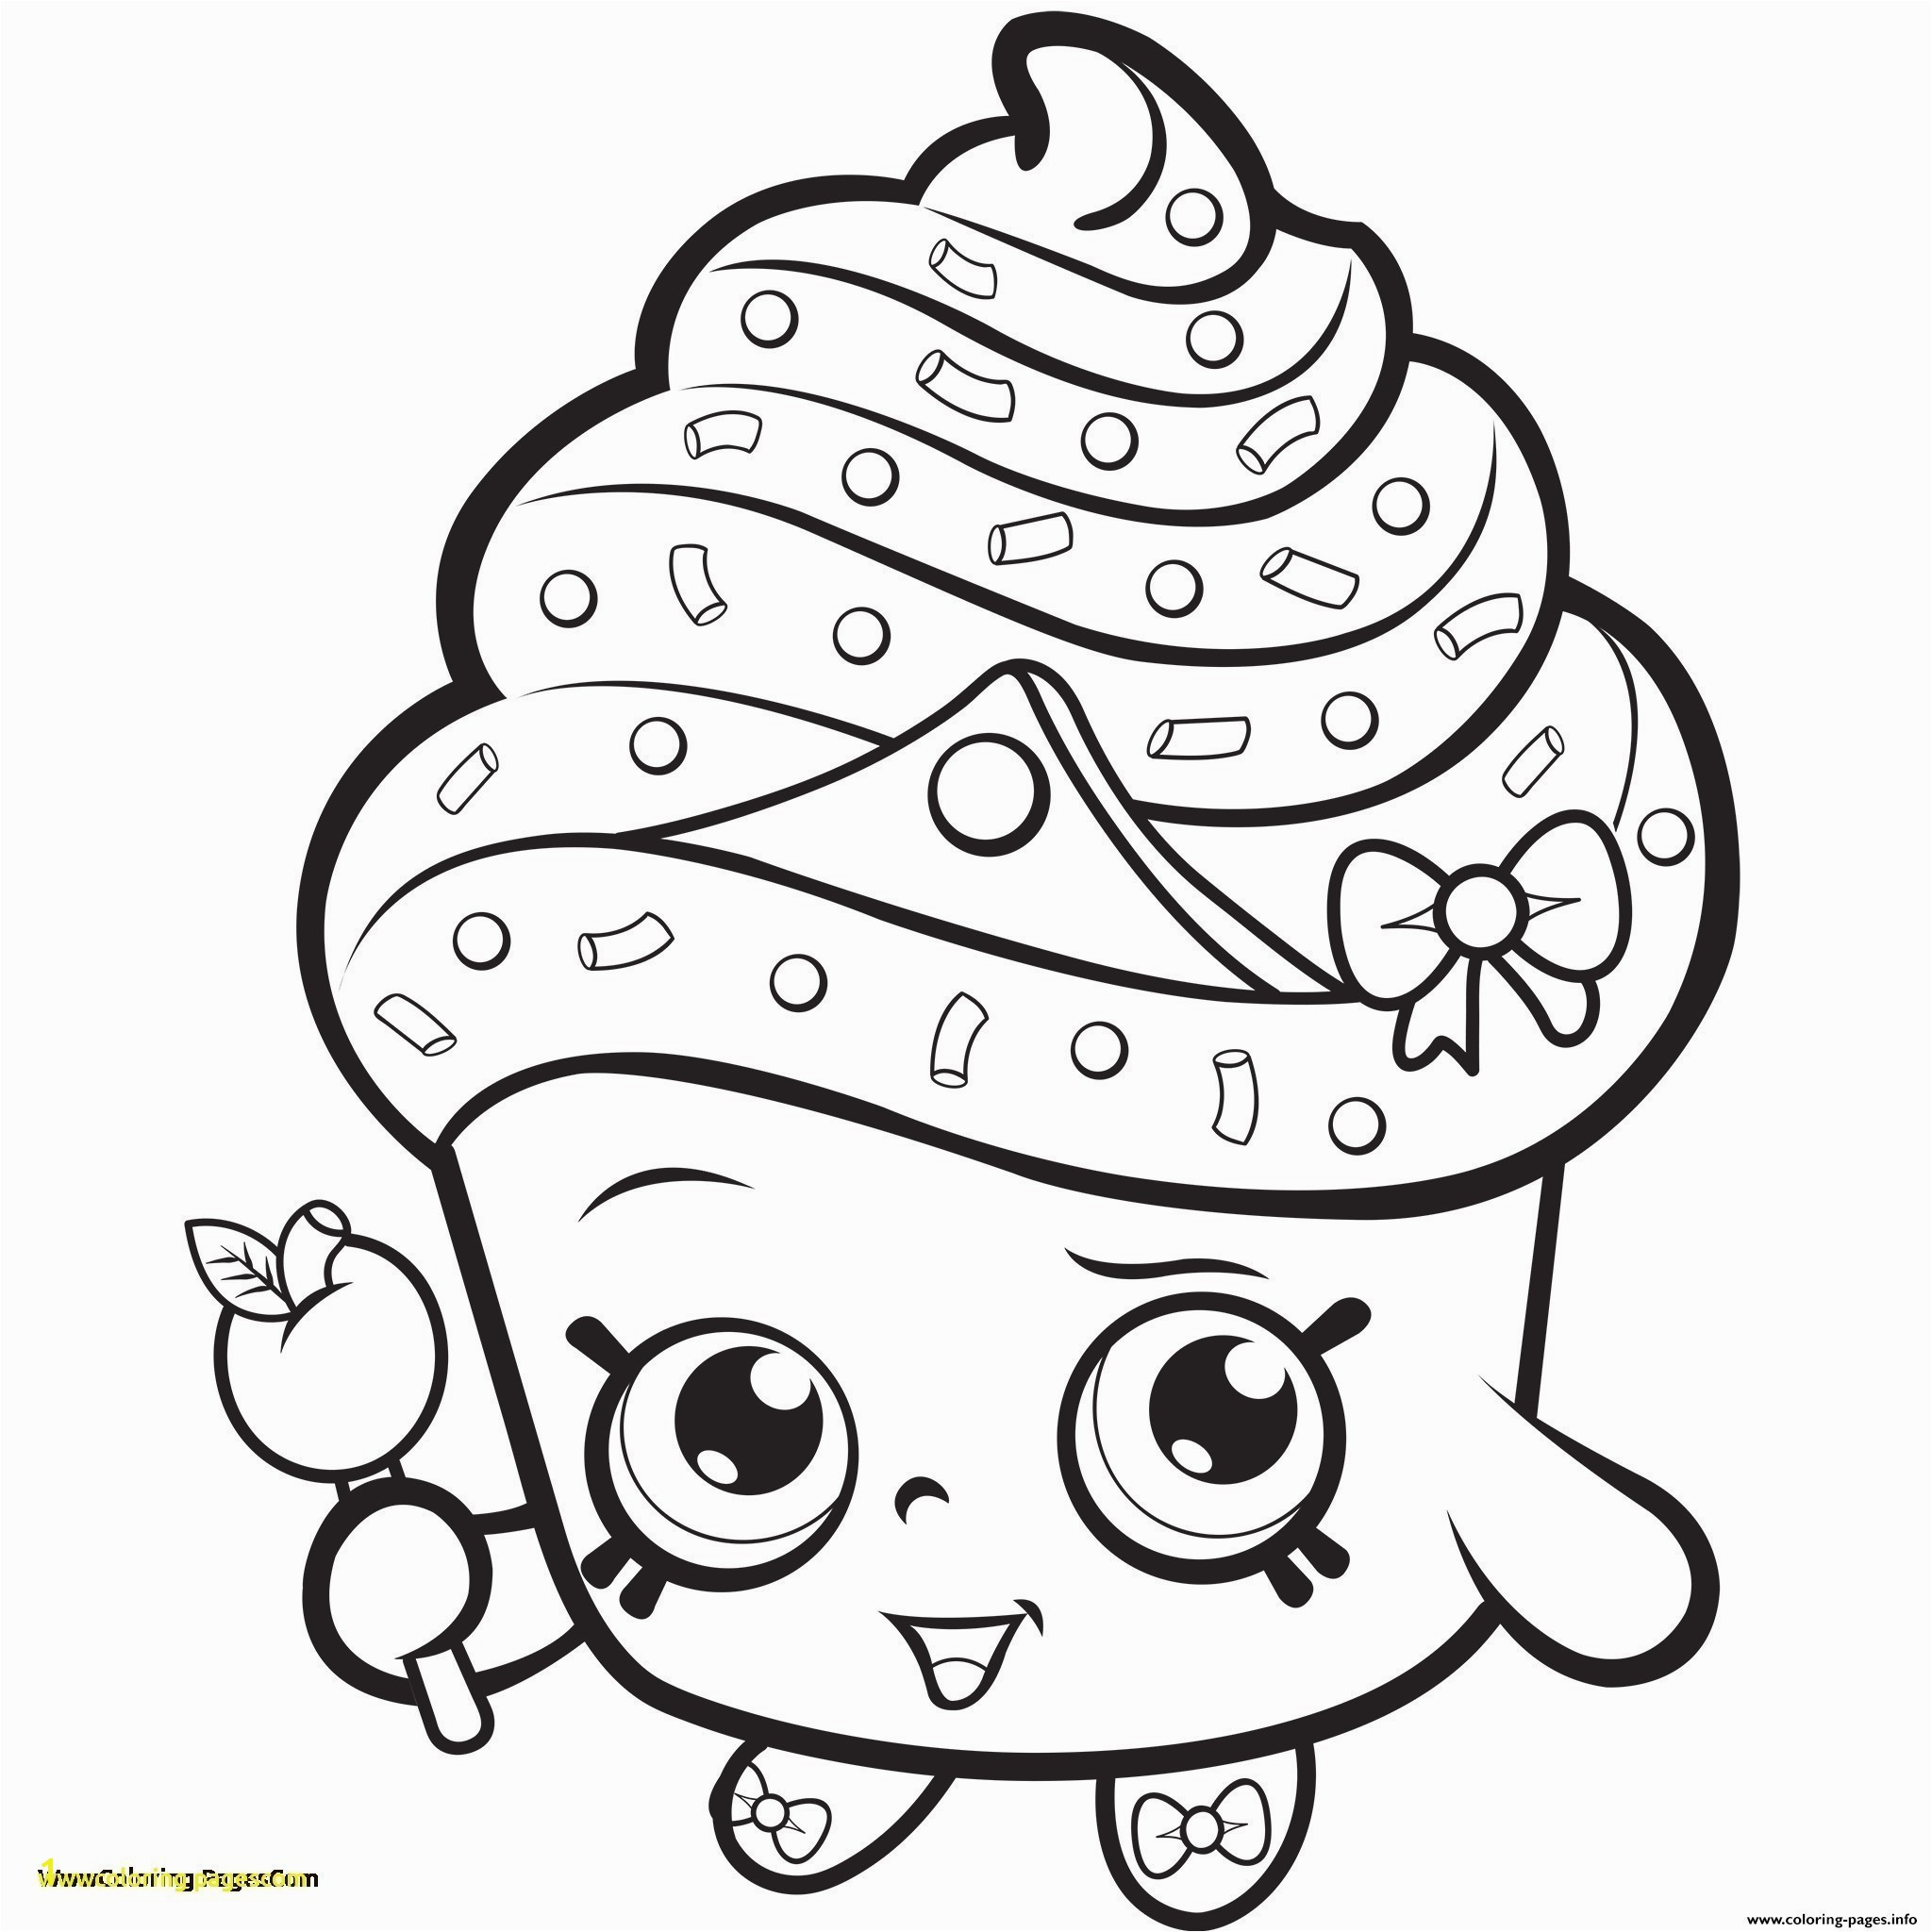 Www Coloring Pages Best Www Free Coloring Pages Thanksgiving 5466 Inside Wwwcoloring